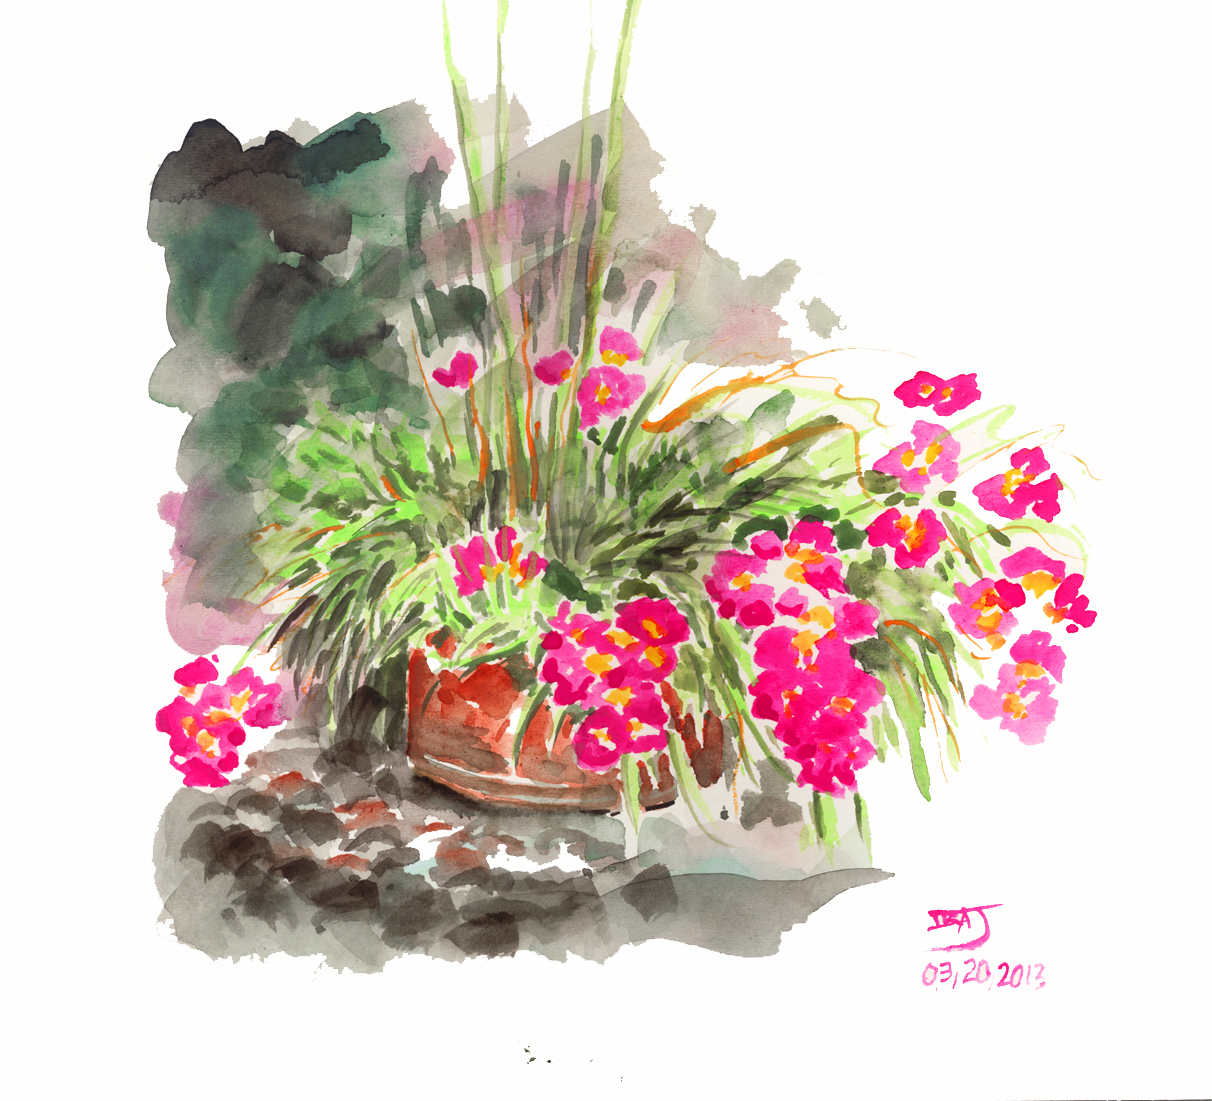 WATER-COLORS/FLOWERS-03-20-2013-4.jpg